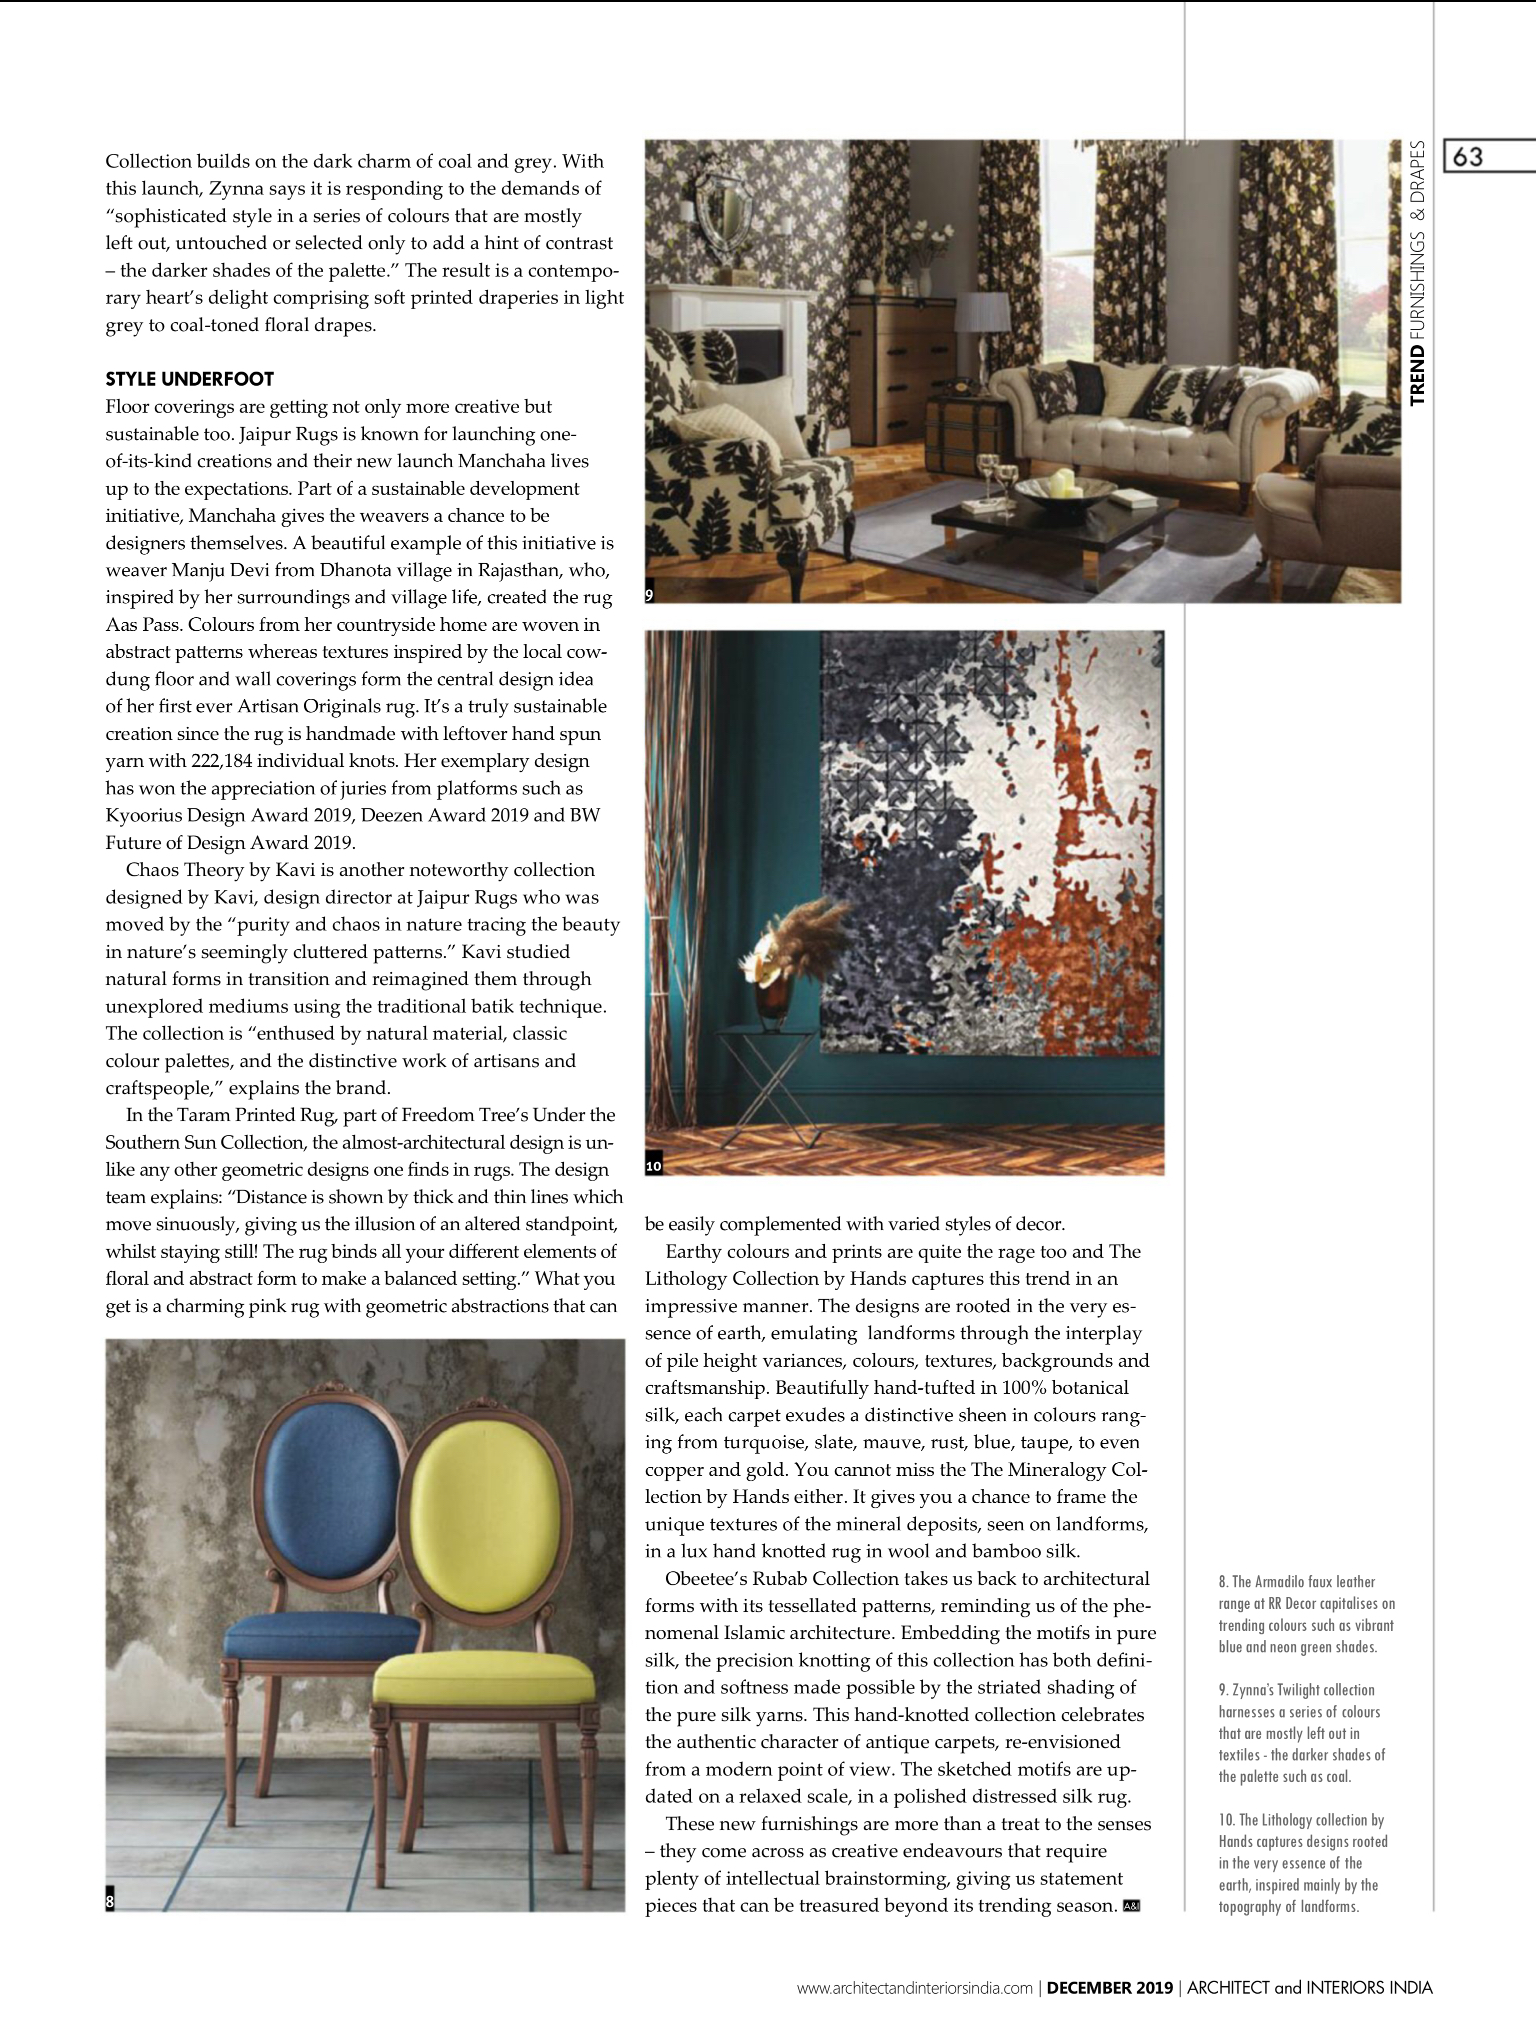 Hands Architects & Interiors India December 2019 2